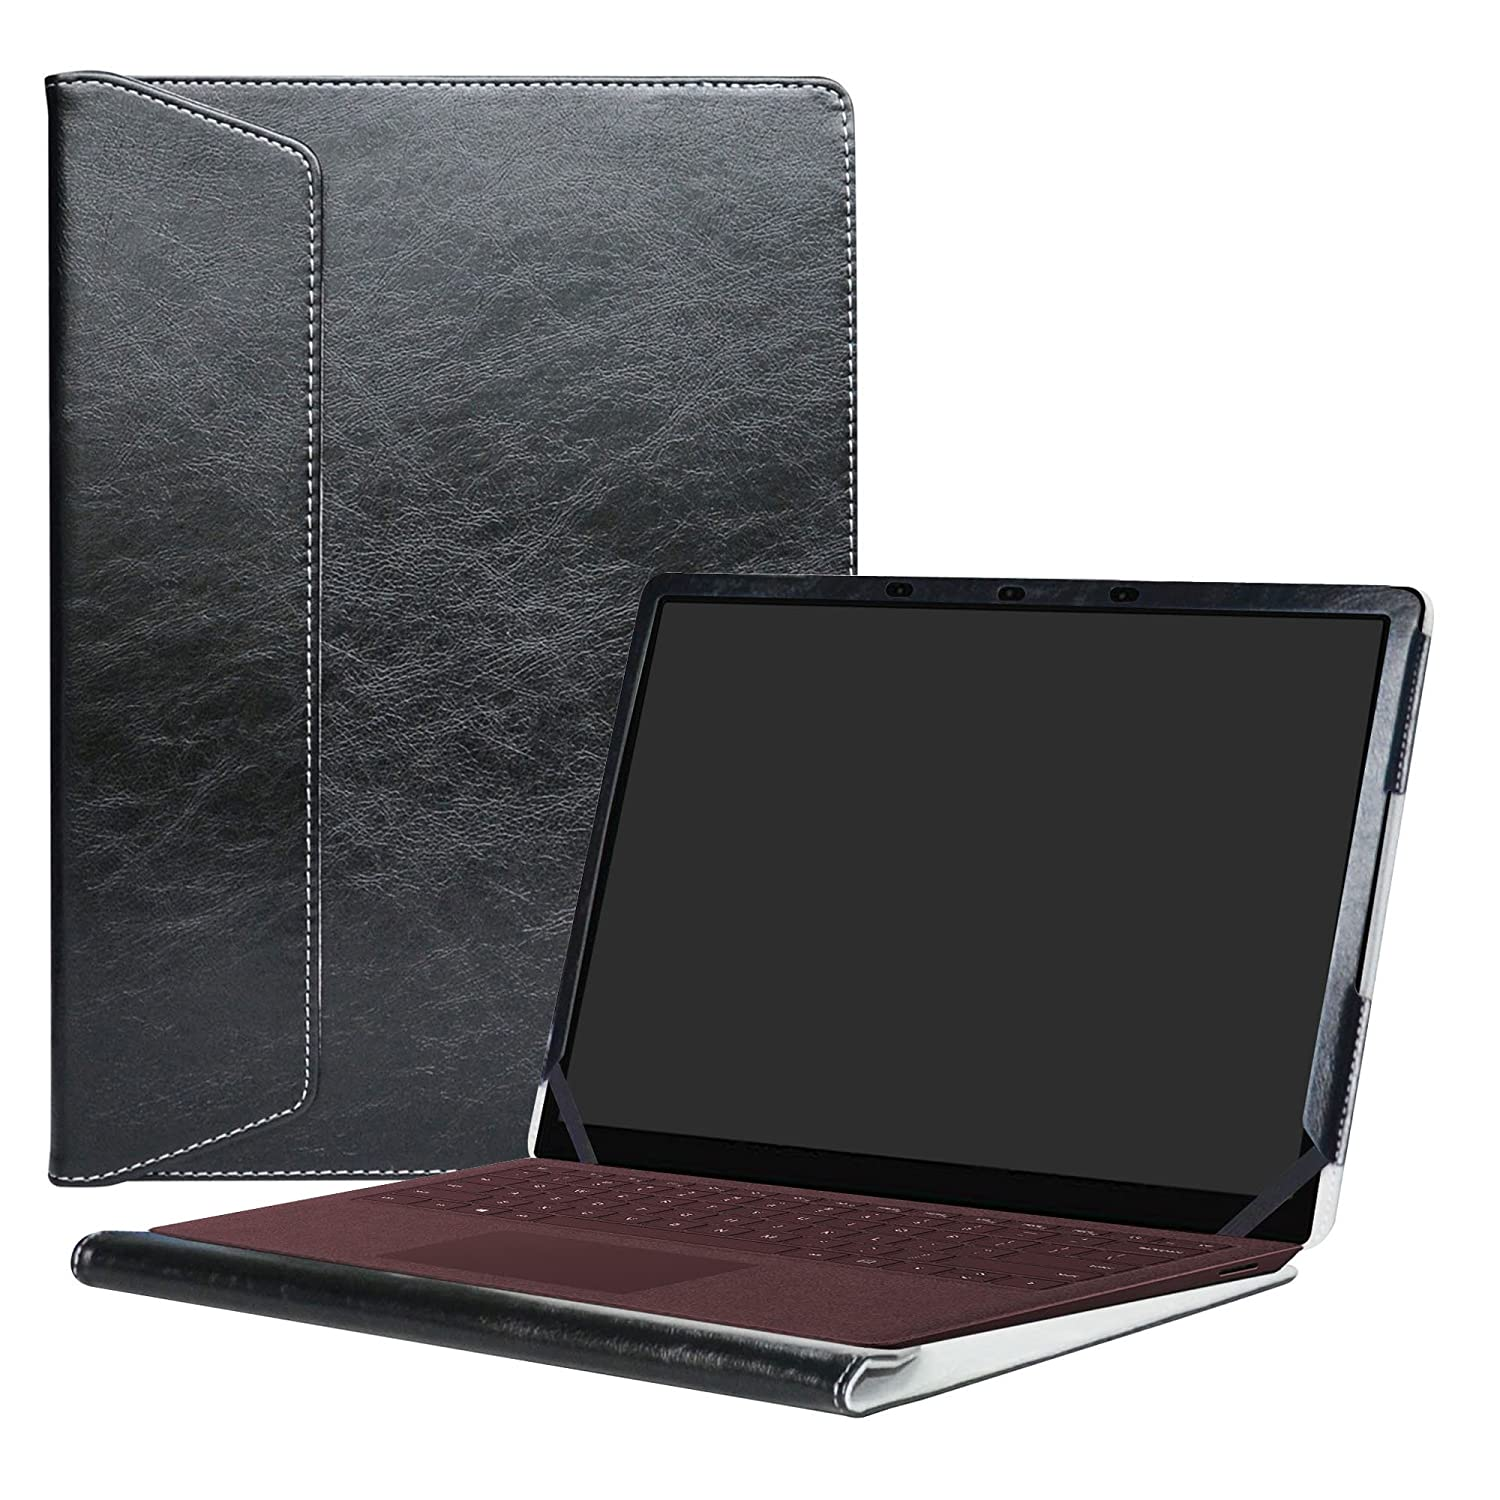 Amazon.com: Alapmk - Funda para Microsoft Surface de 13,5 ...